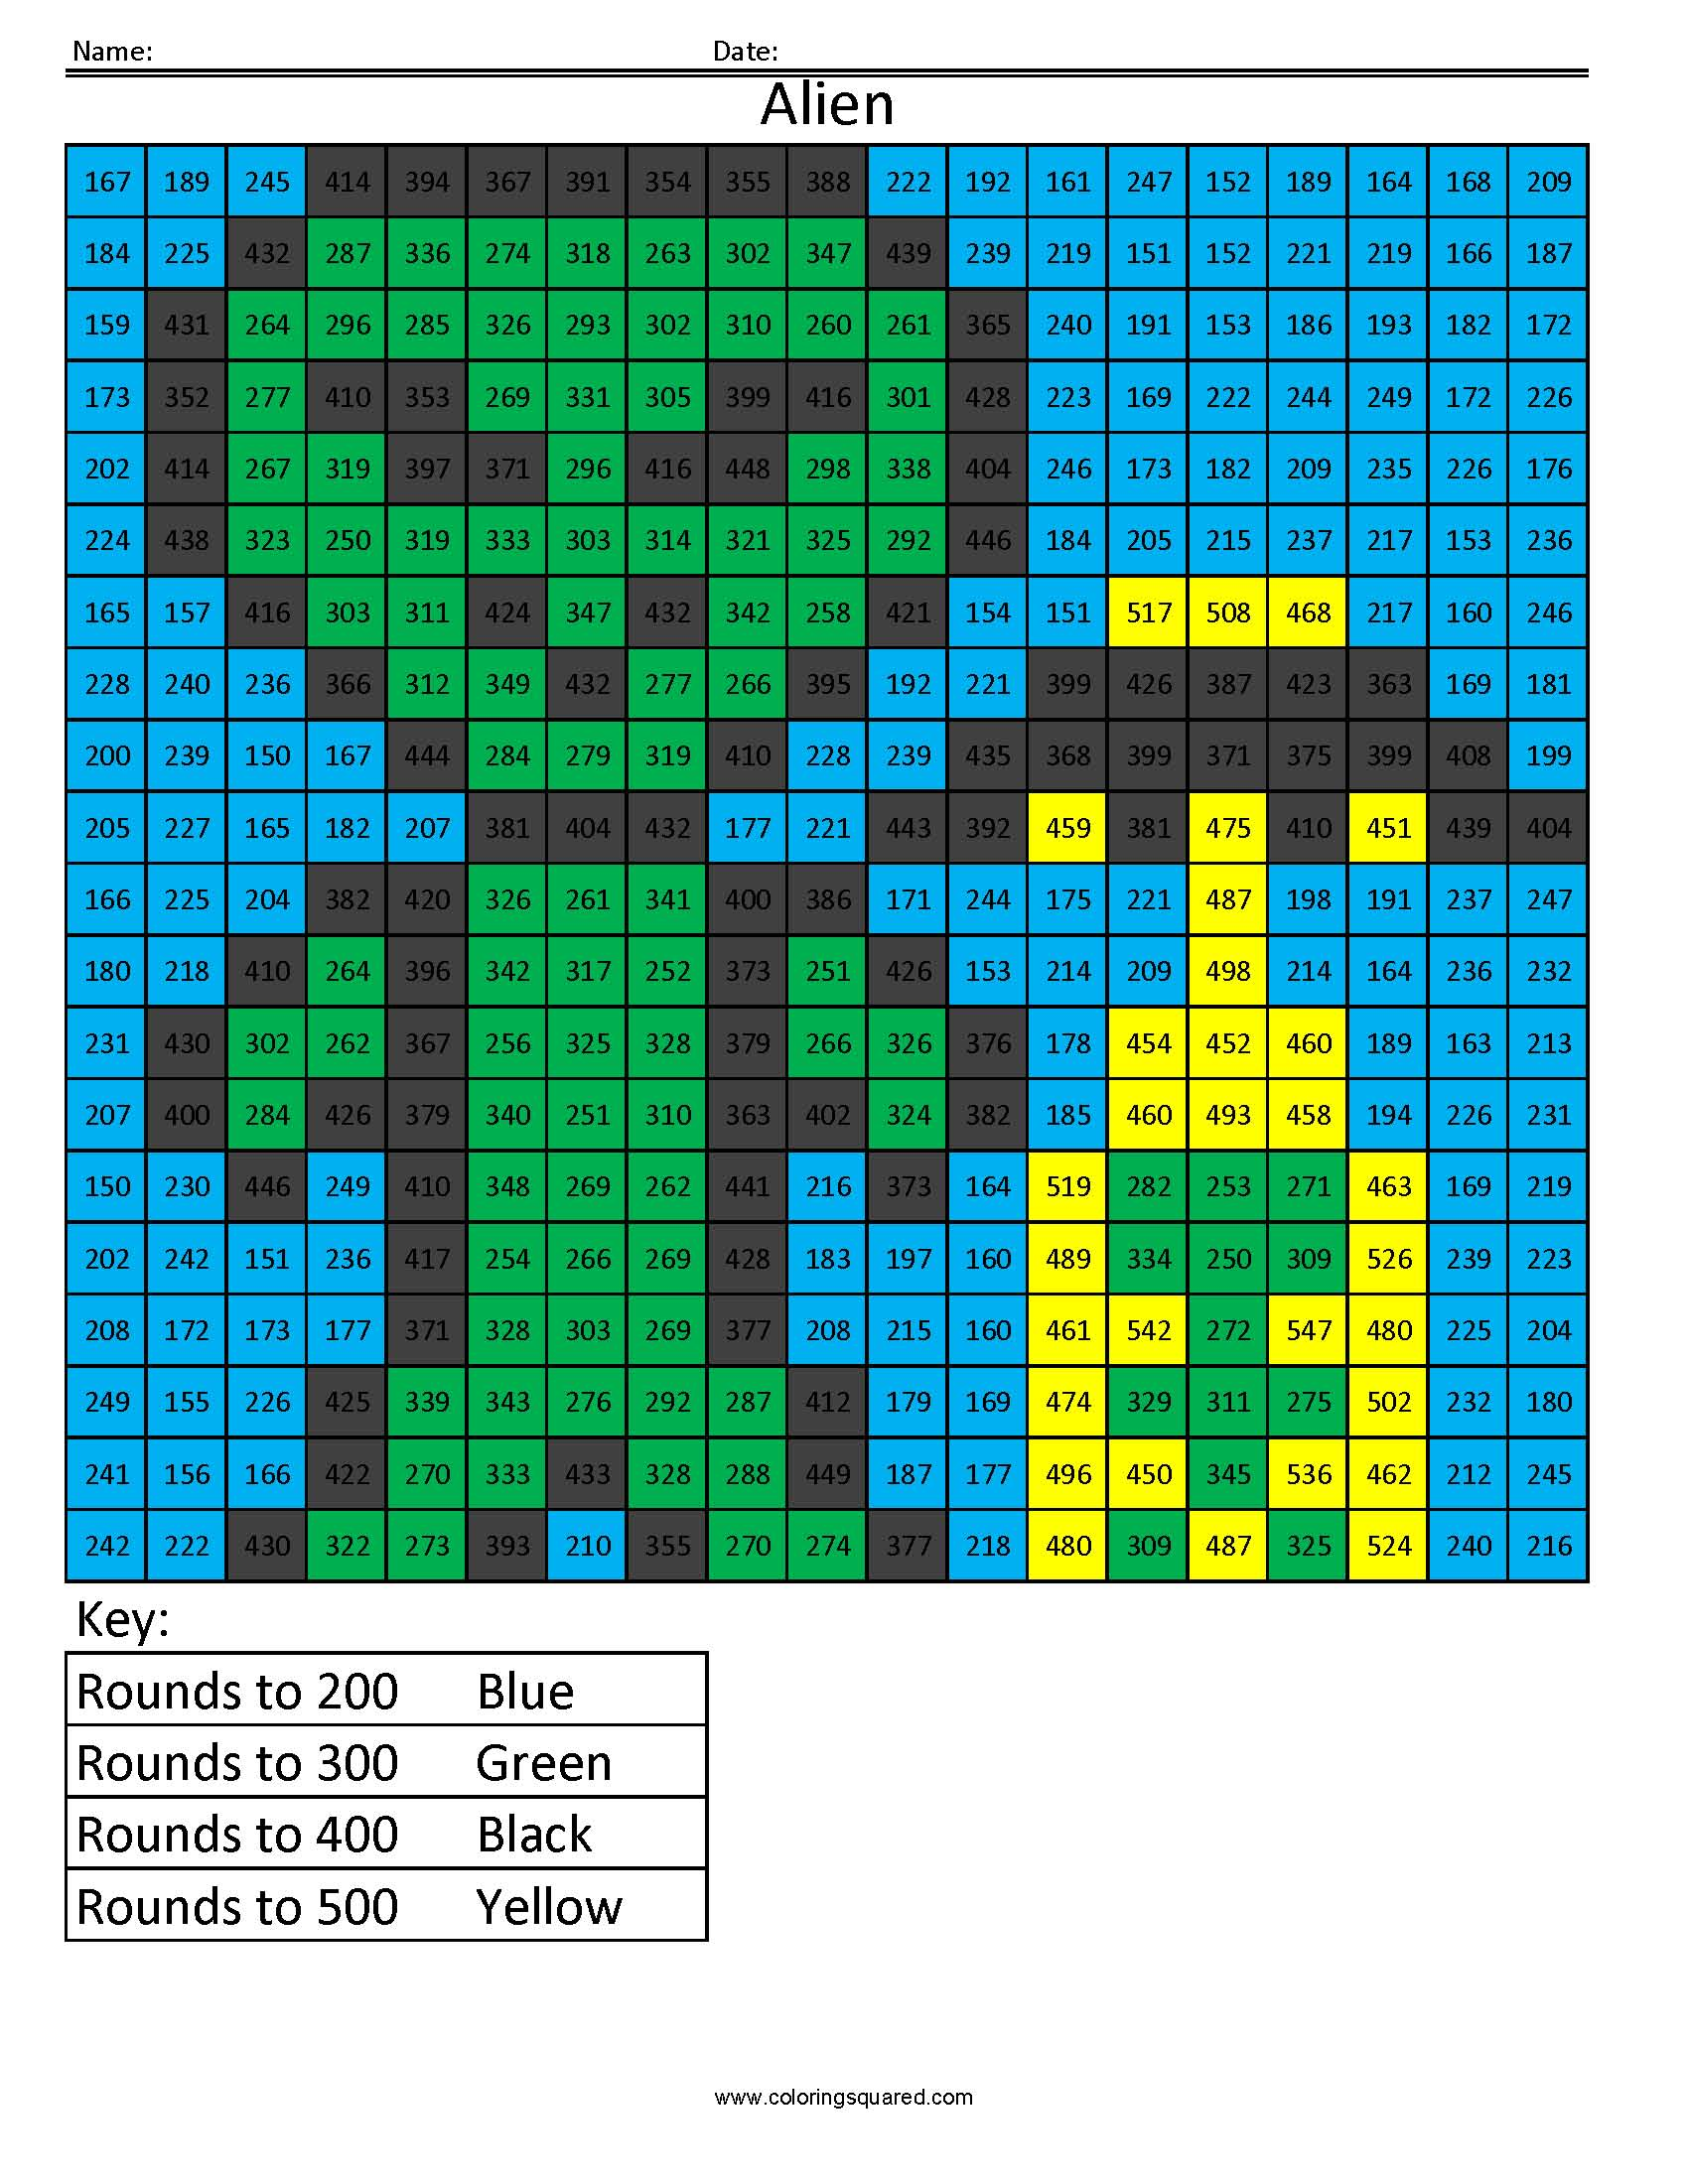 Rh2 Alien Free Rounding Math Worksheets For Kids